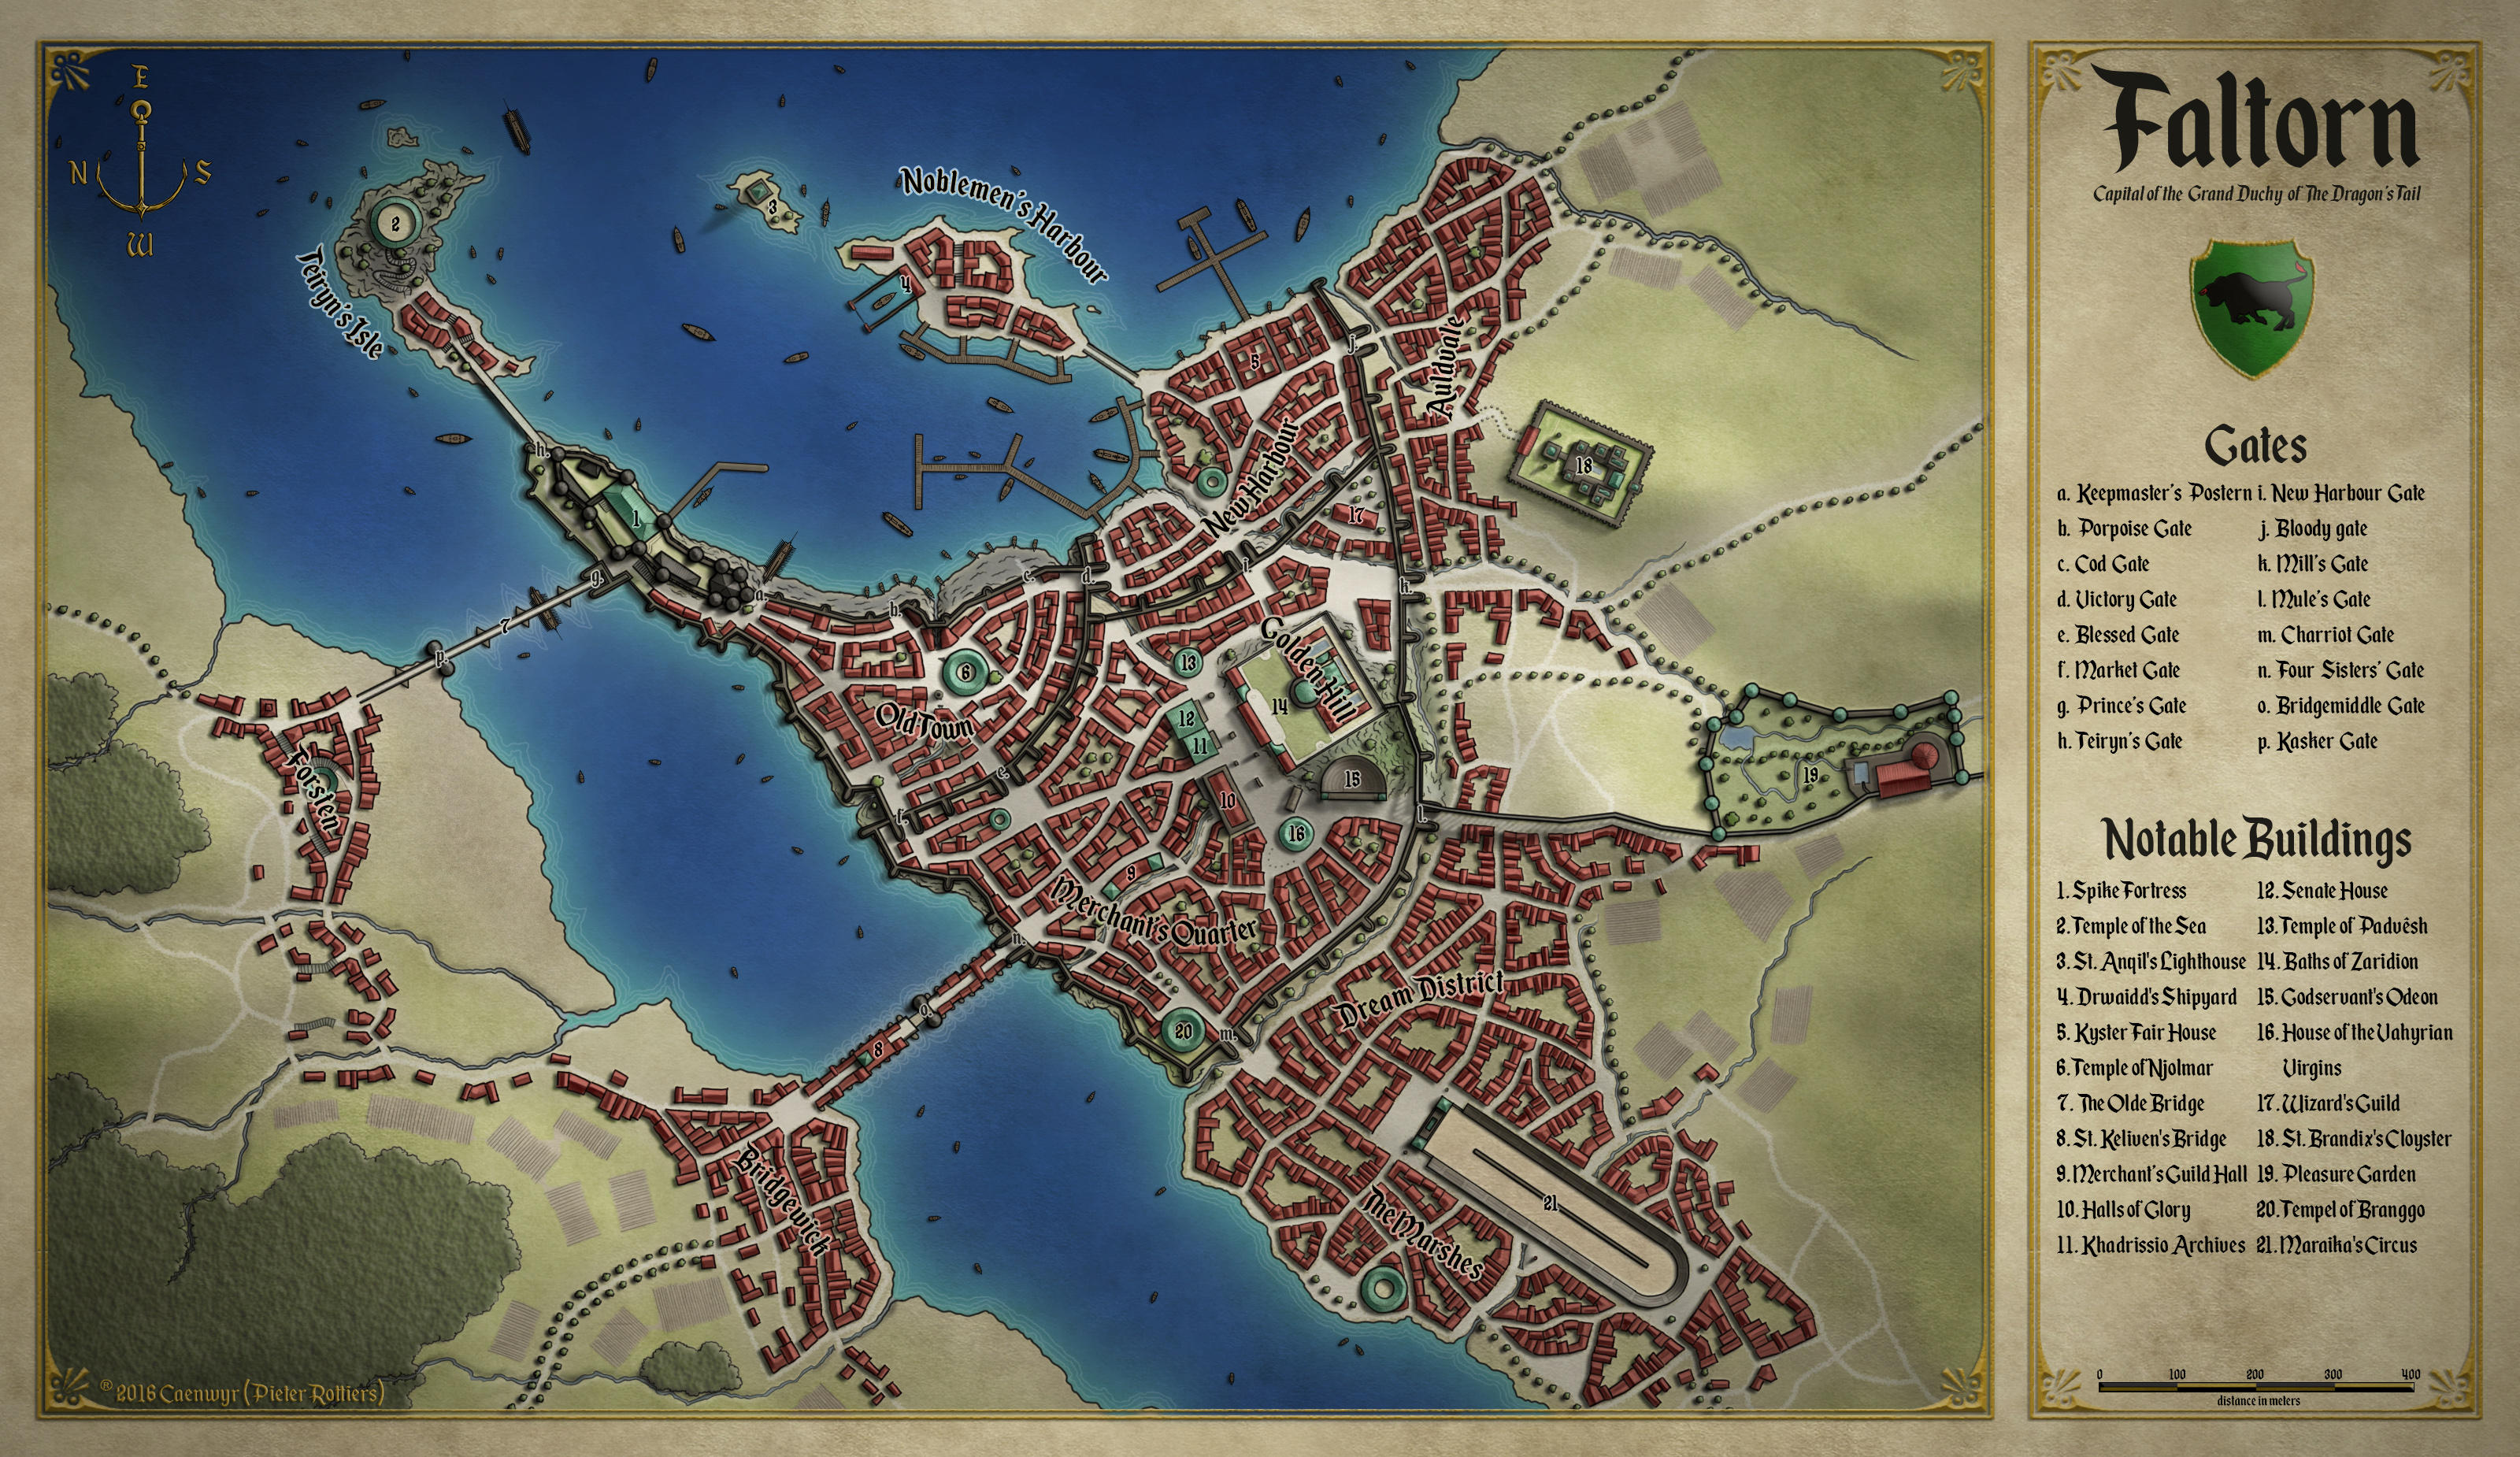 Faltorn, capital of the Dragon's Tail by Caenwyr